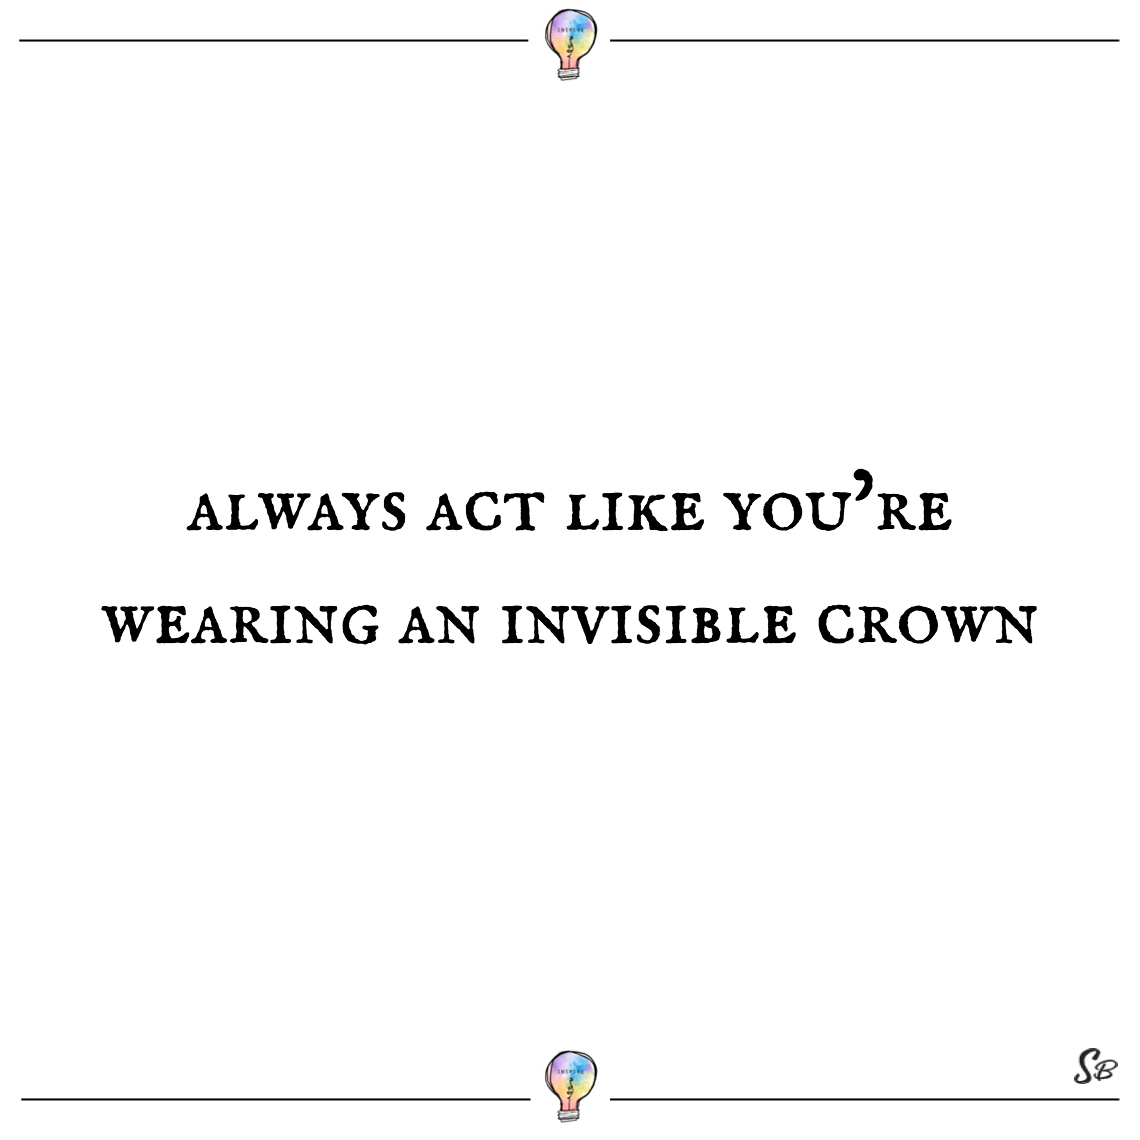 Always act like you're wearing an invisible crown